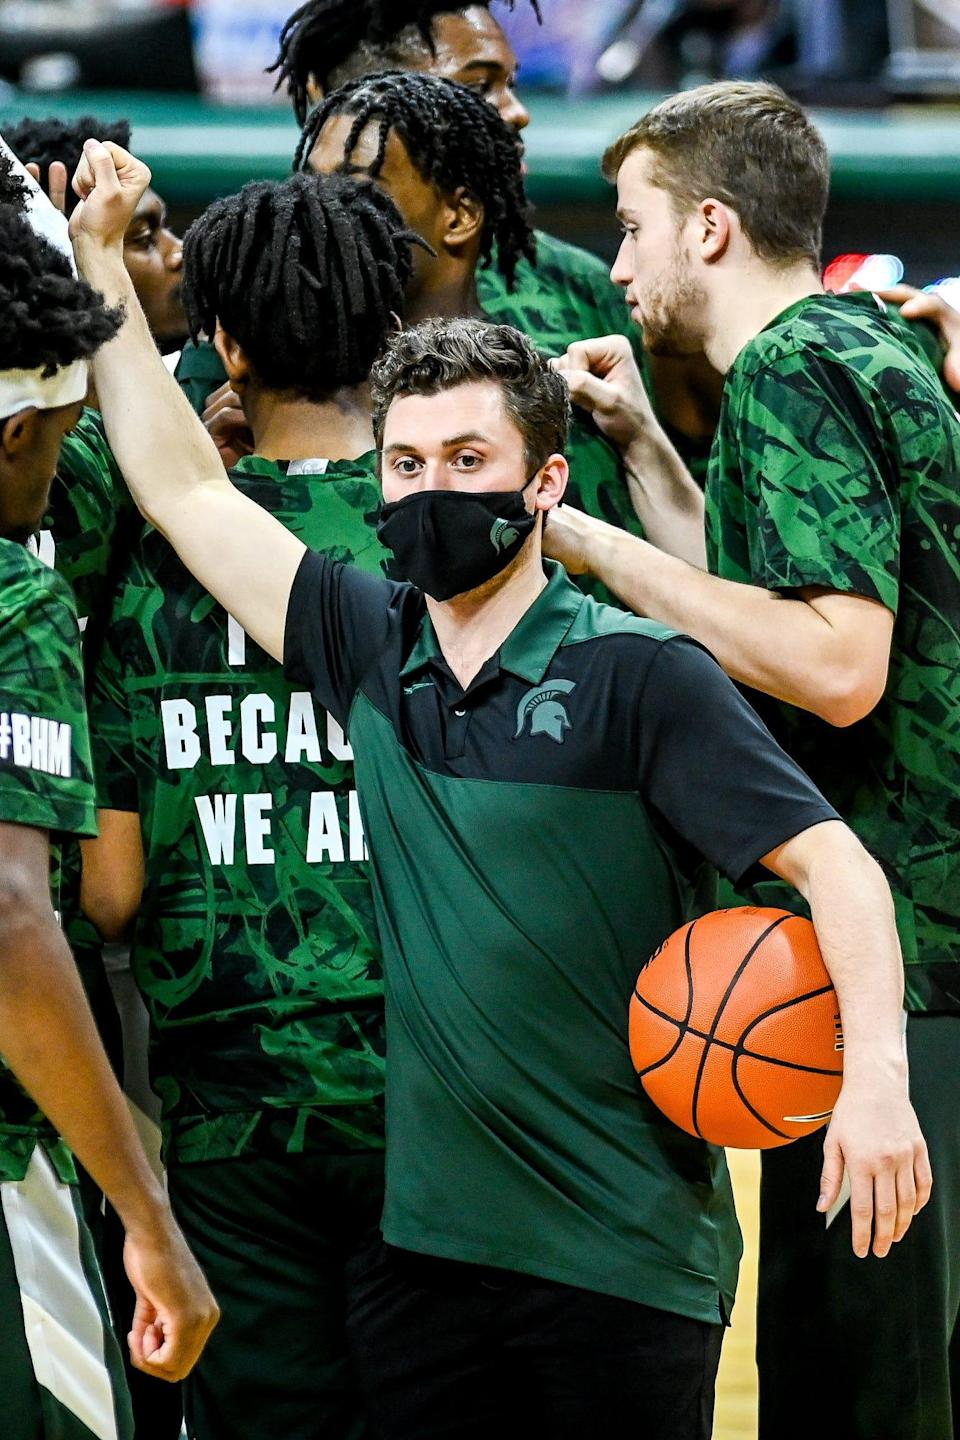 Michigan State's Foster Loyer did not dress for the Spartans game against Ohio State on Thursday, Feb. 25, 2021, at the Breslin Center in East Lansing.